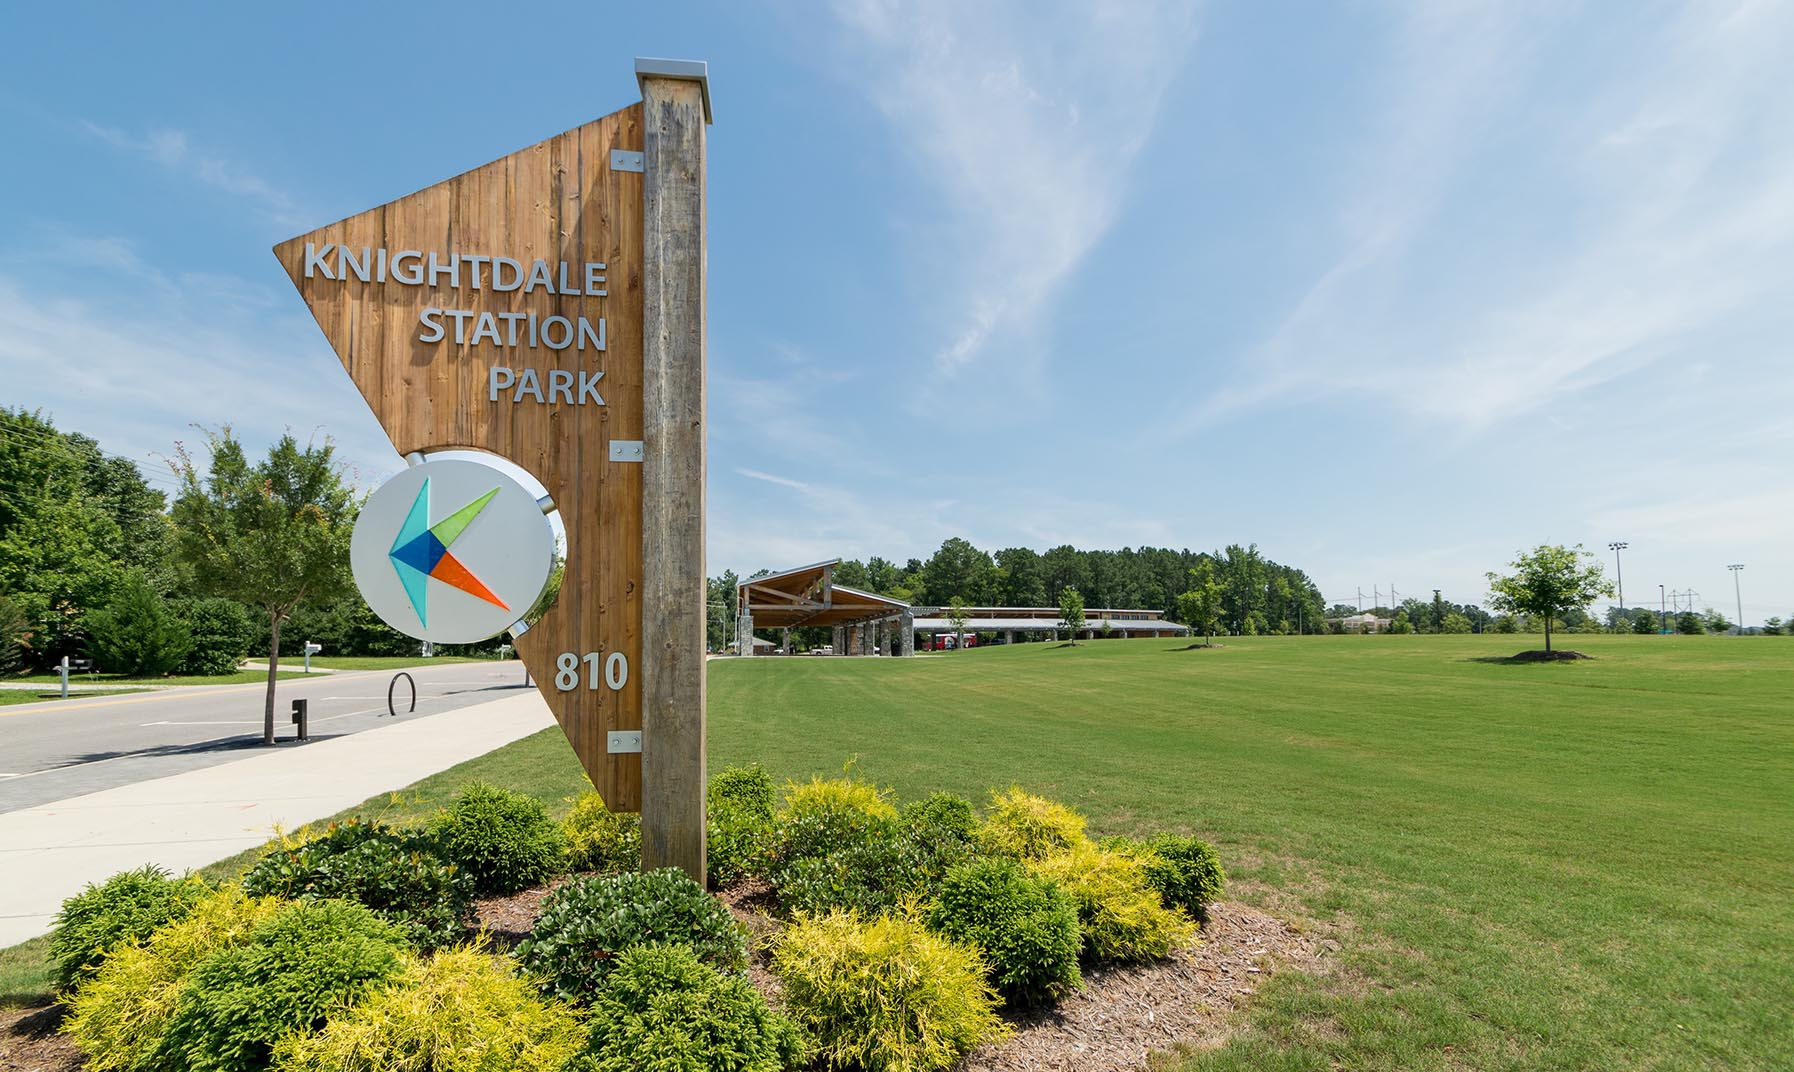 Knightdale Station Park